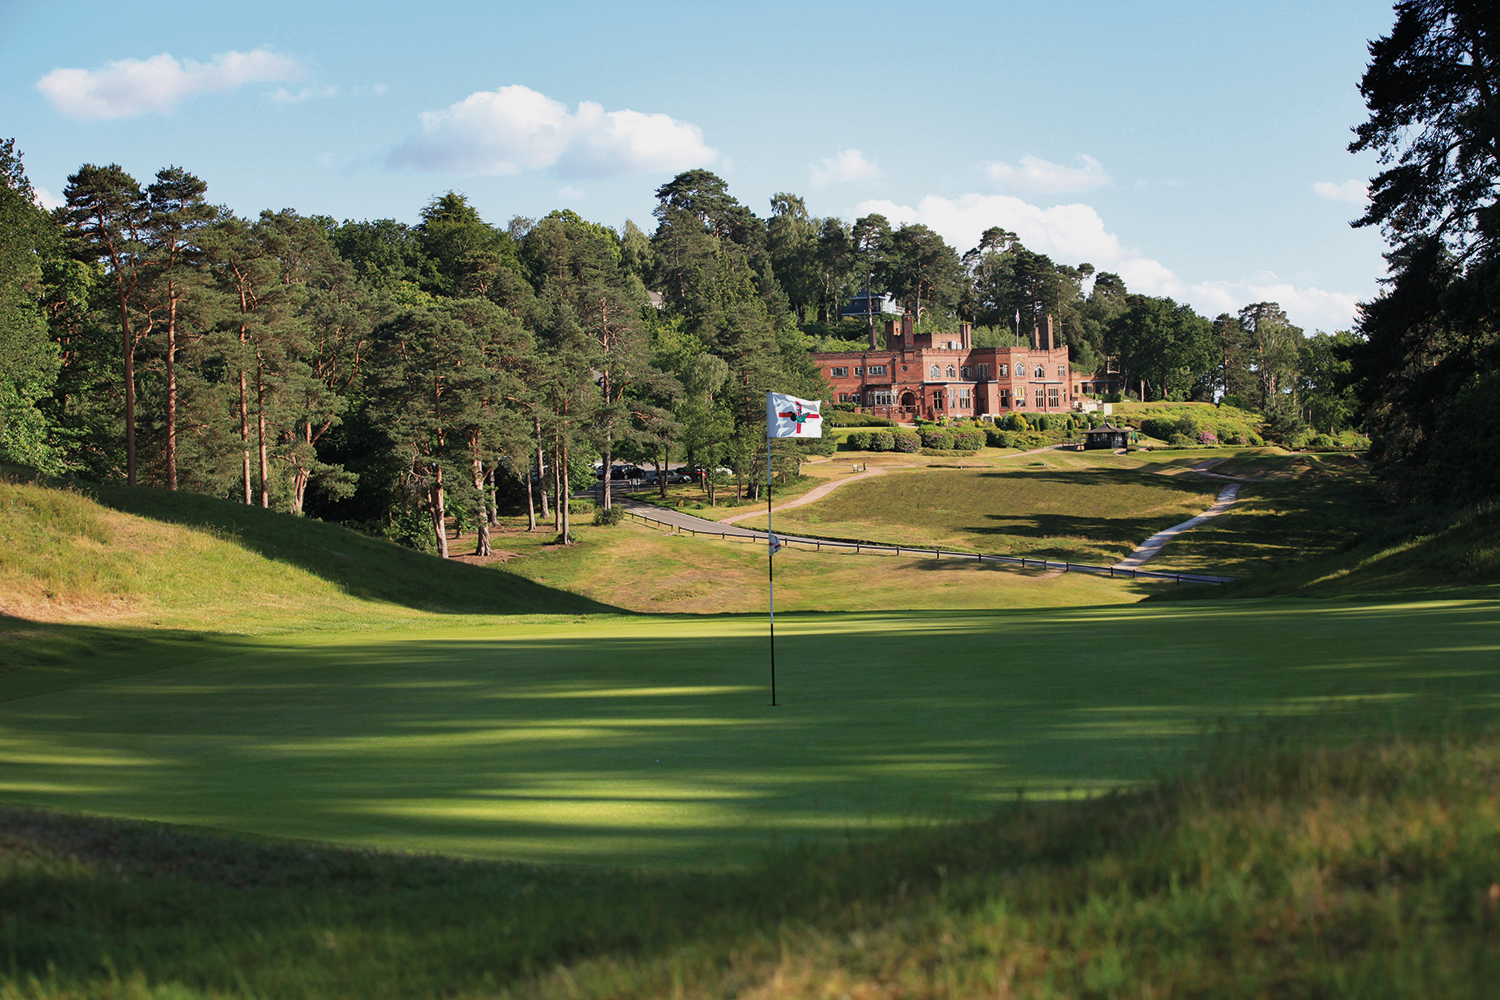 St. George's Hill Golf Club